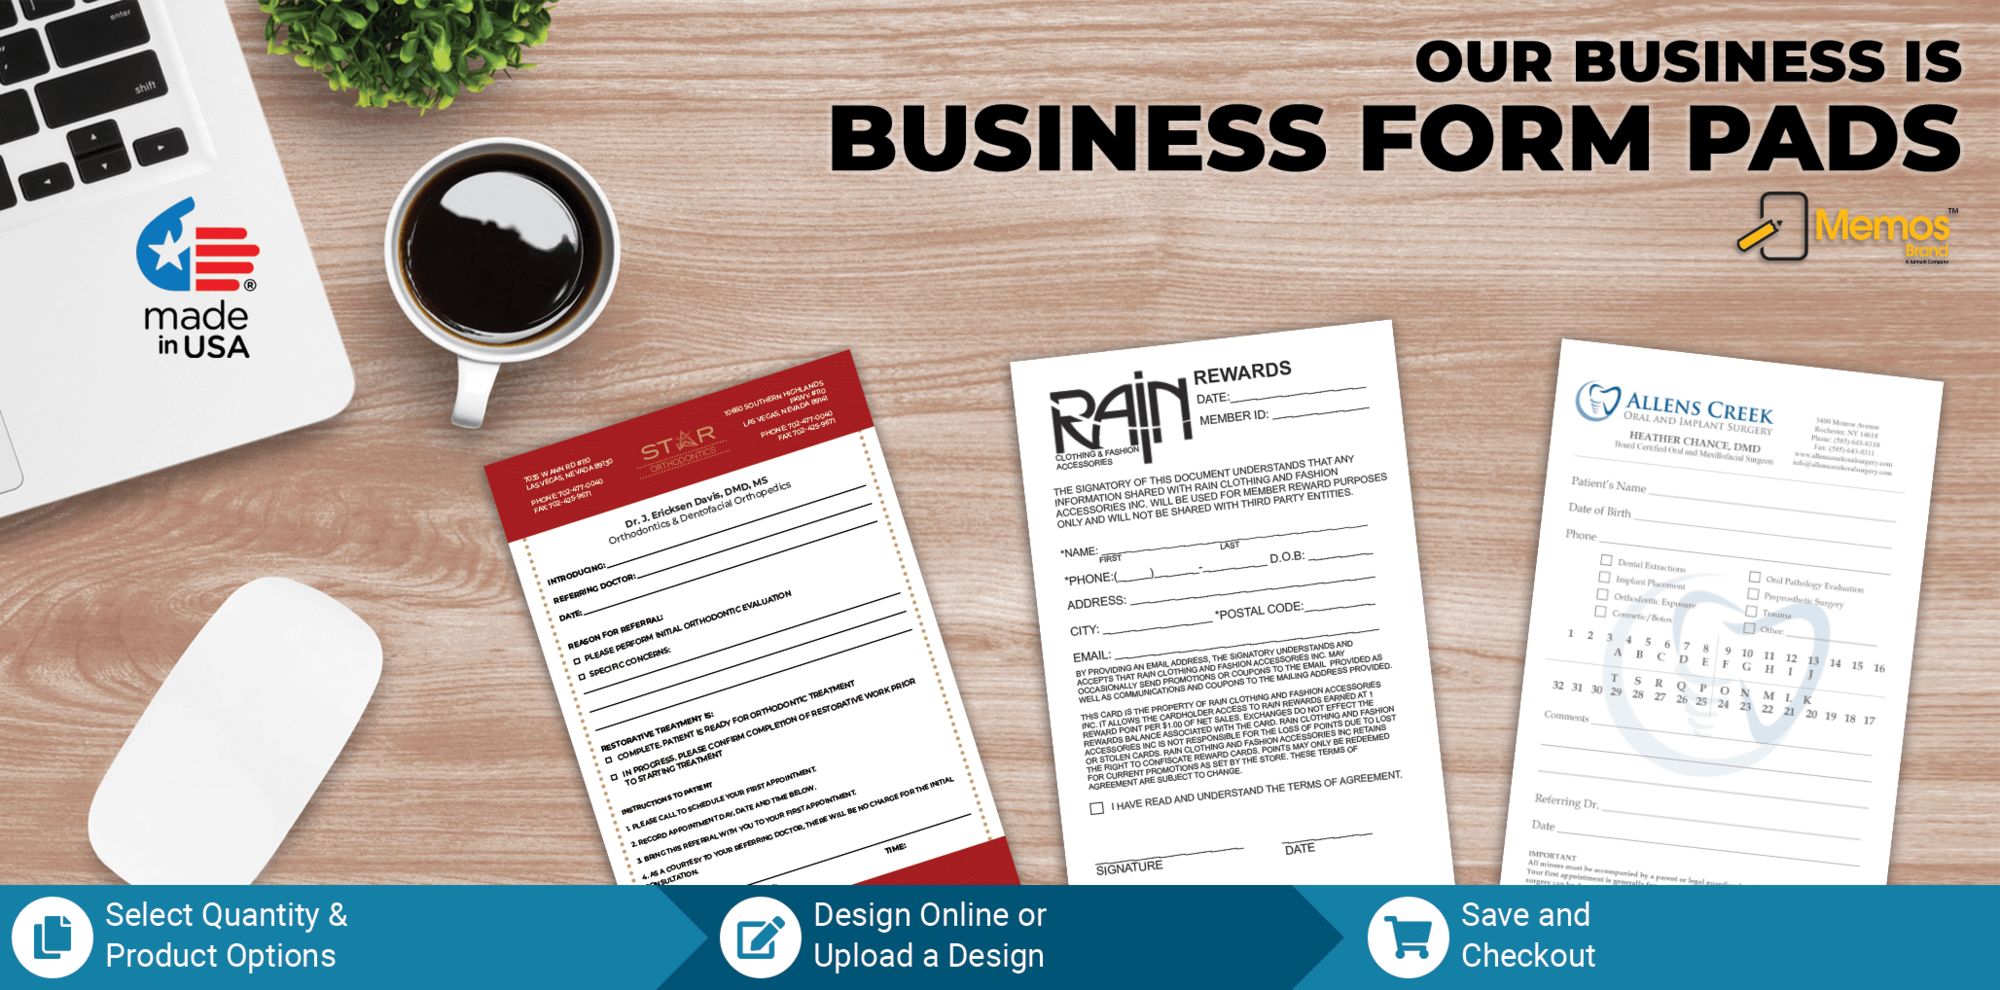 https://printpps.com/images/products_gallery_images/Banner_5_5x8_5-BusinessForm-Pads_ProdFeat_Cover_12060528202007.png